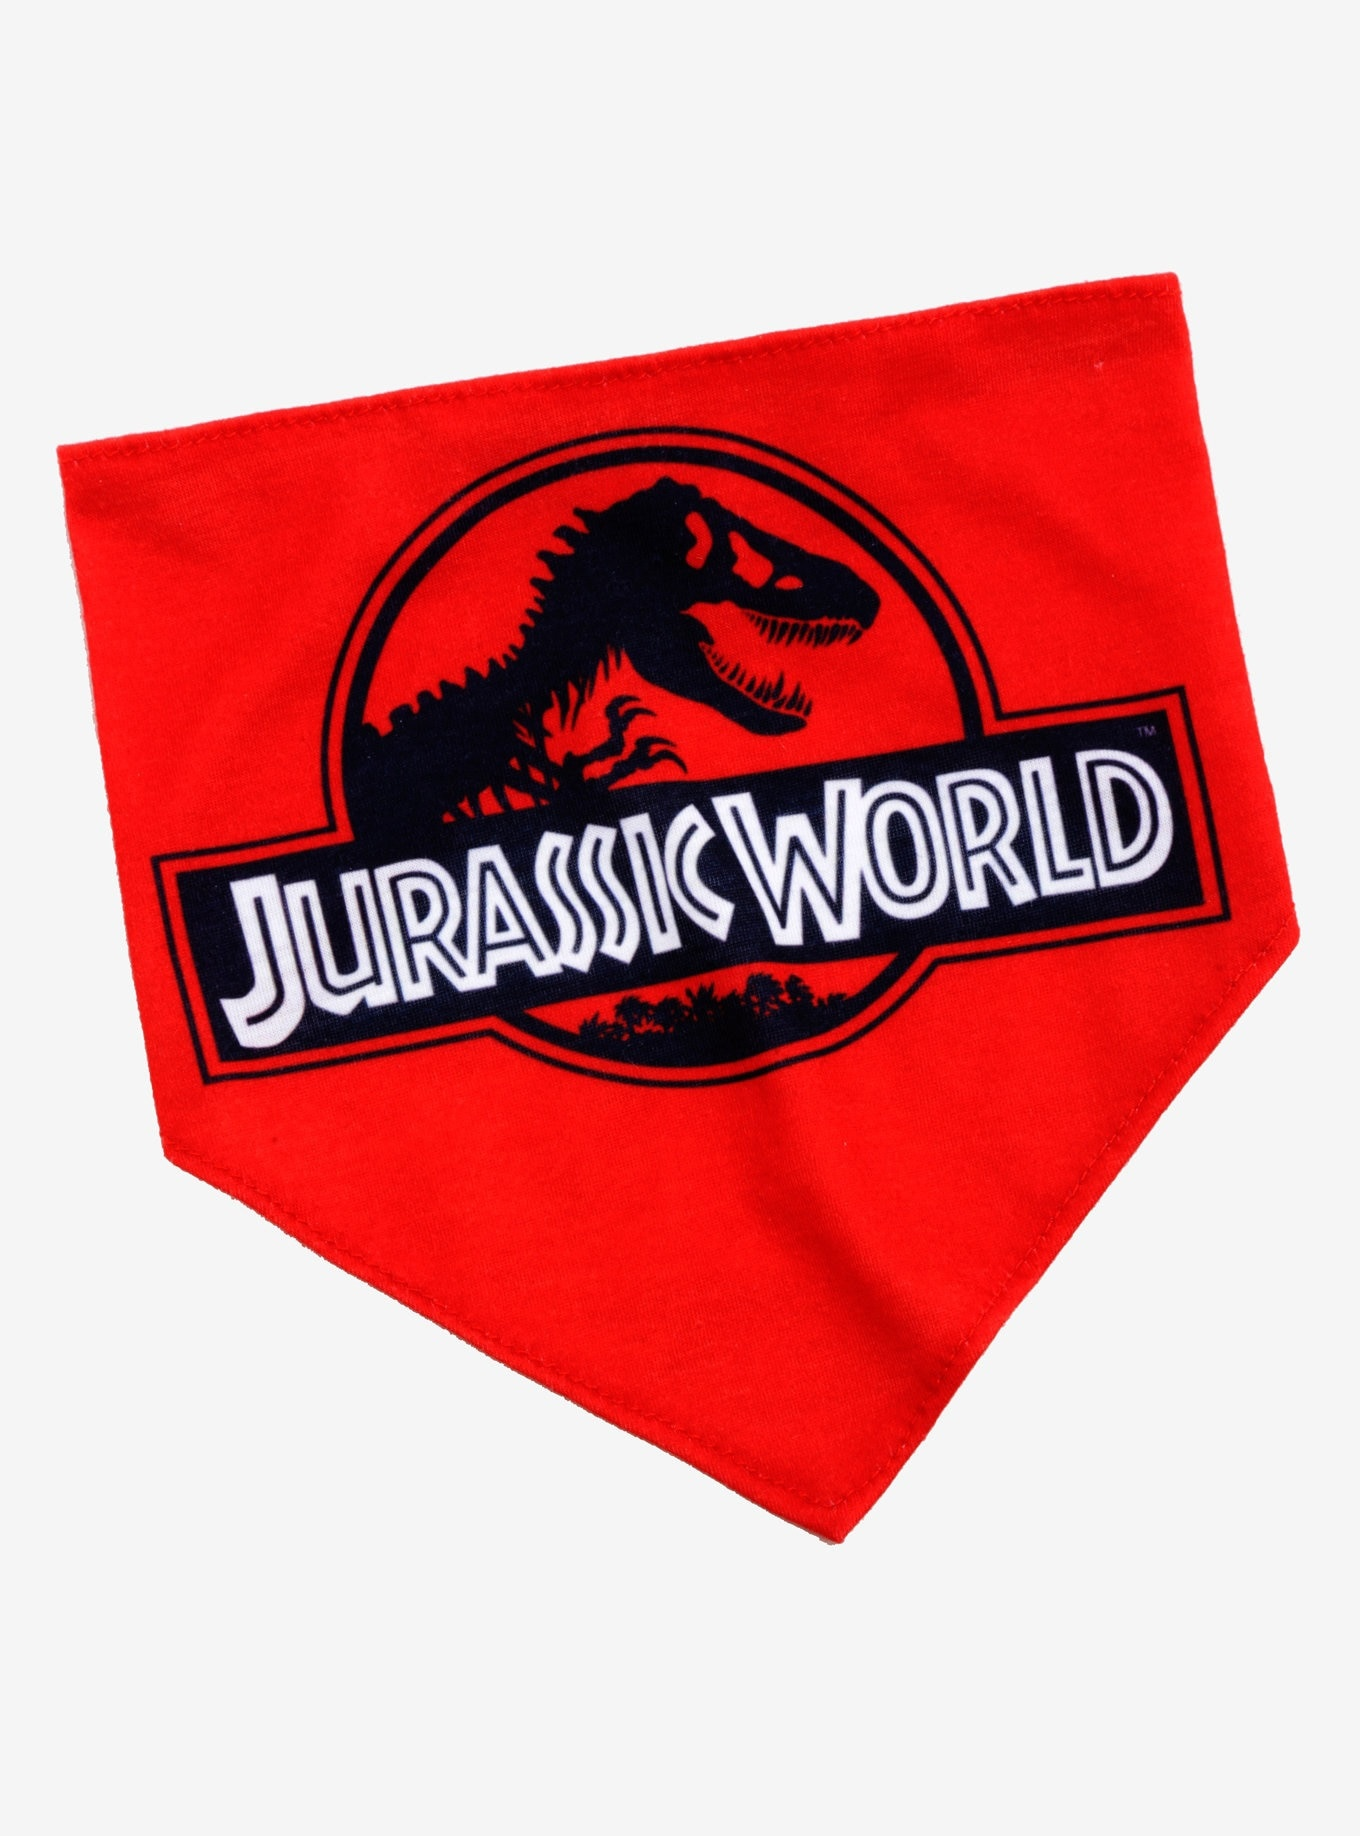 Jurassic World Pet Bandana - Exclusive: BoxLunch's JURASSIC WORLD Collection for Humans and Pets